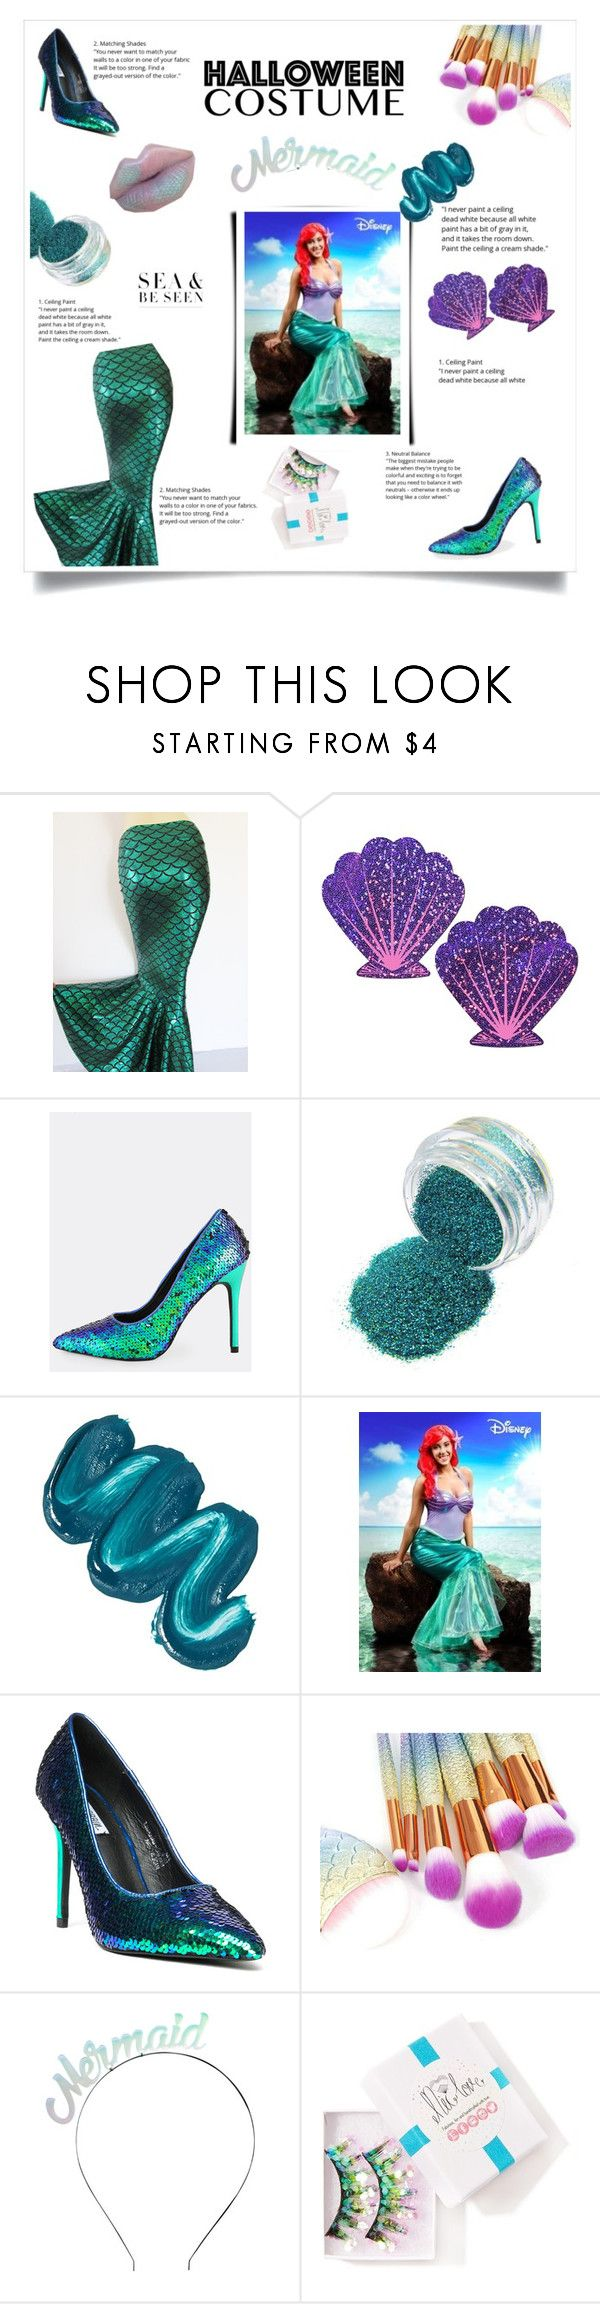 """""""Untitled #525"""" by natasharadmilovic78 ❤ liked on Polyvore featuring Pastease, Mermaid Salon, Disney, Cape Robbin, Crown and Glory and FromNicLove"""